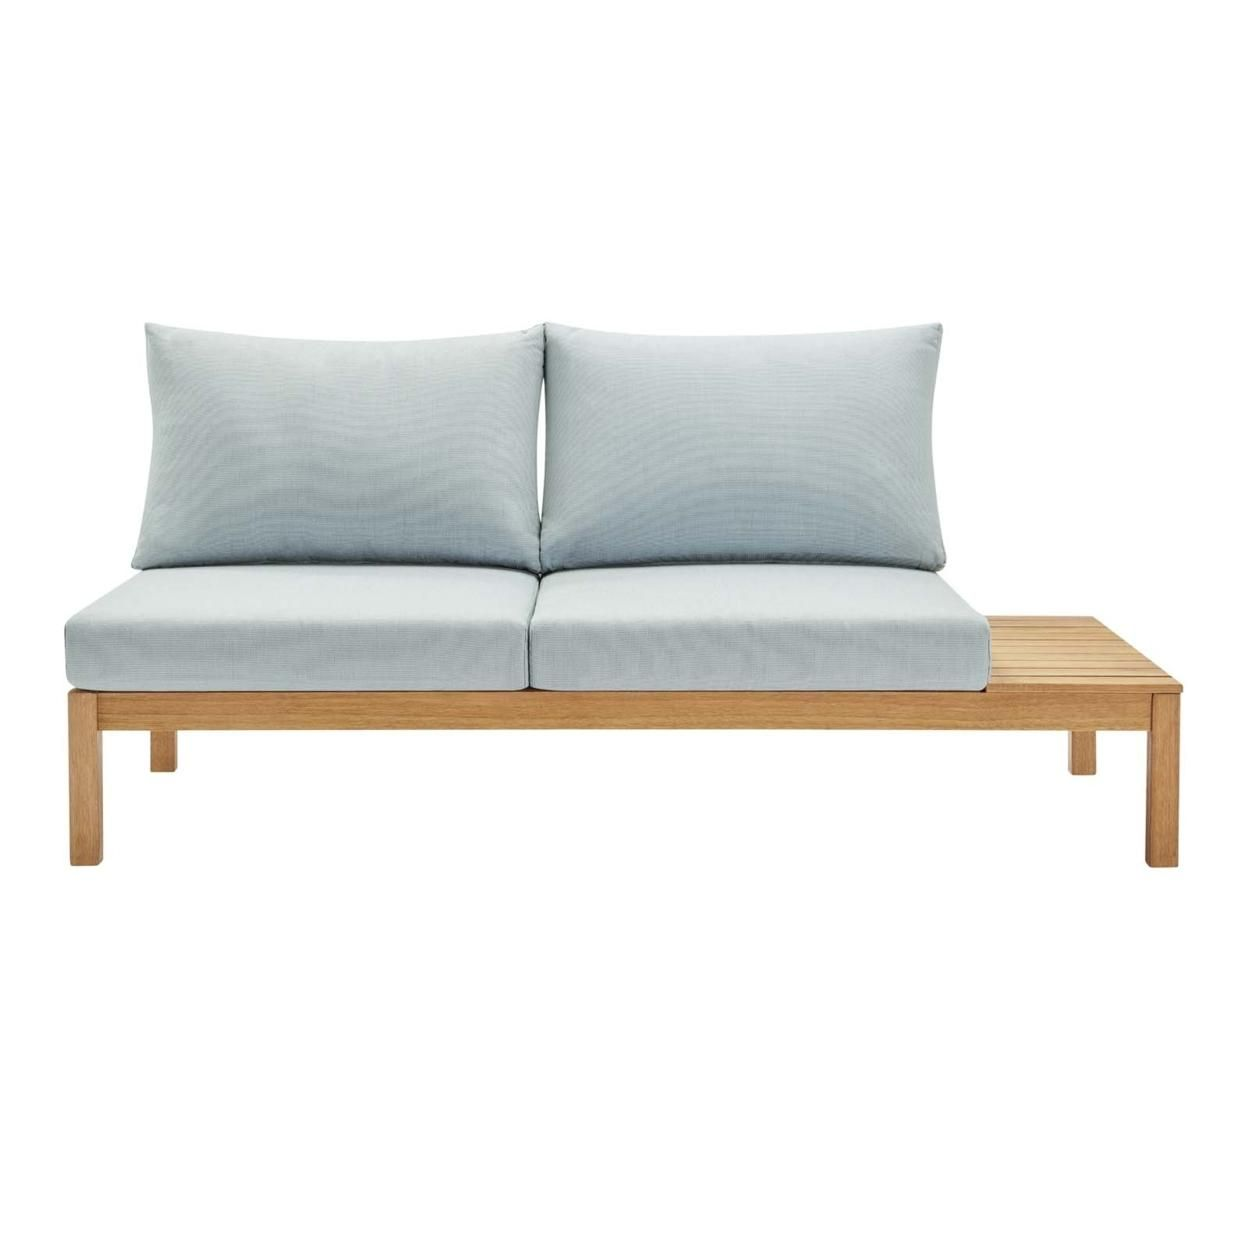 Freeport Karri Wood Outdoor Patio Loveseat with Right-Facing Side End Table, Natural Light Blue